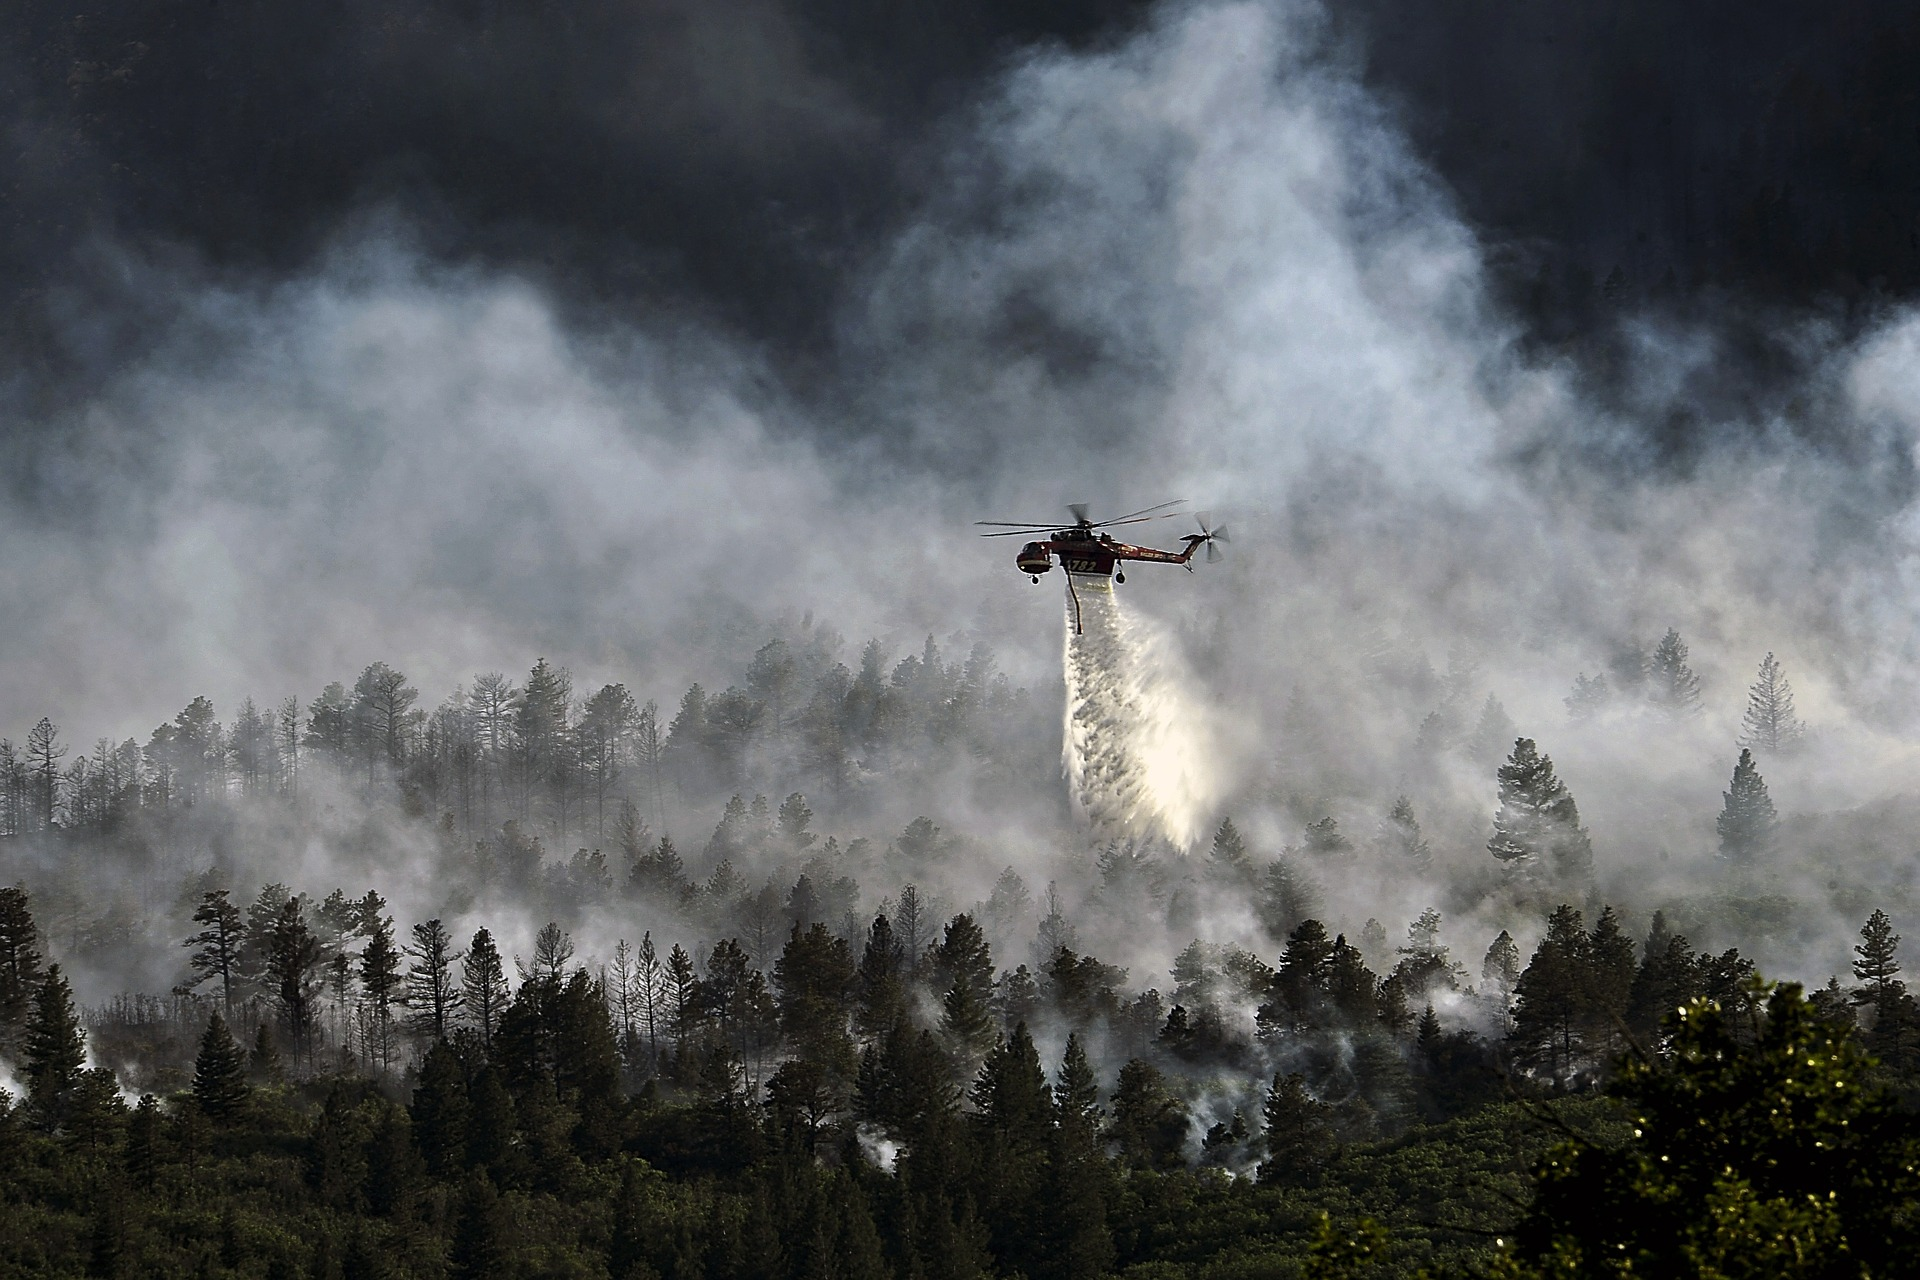 Wicked fire: Managing fire risk in a changing climate